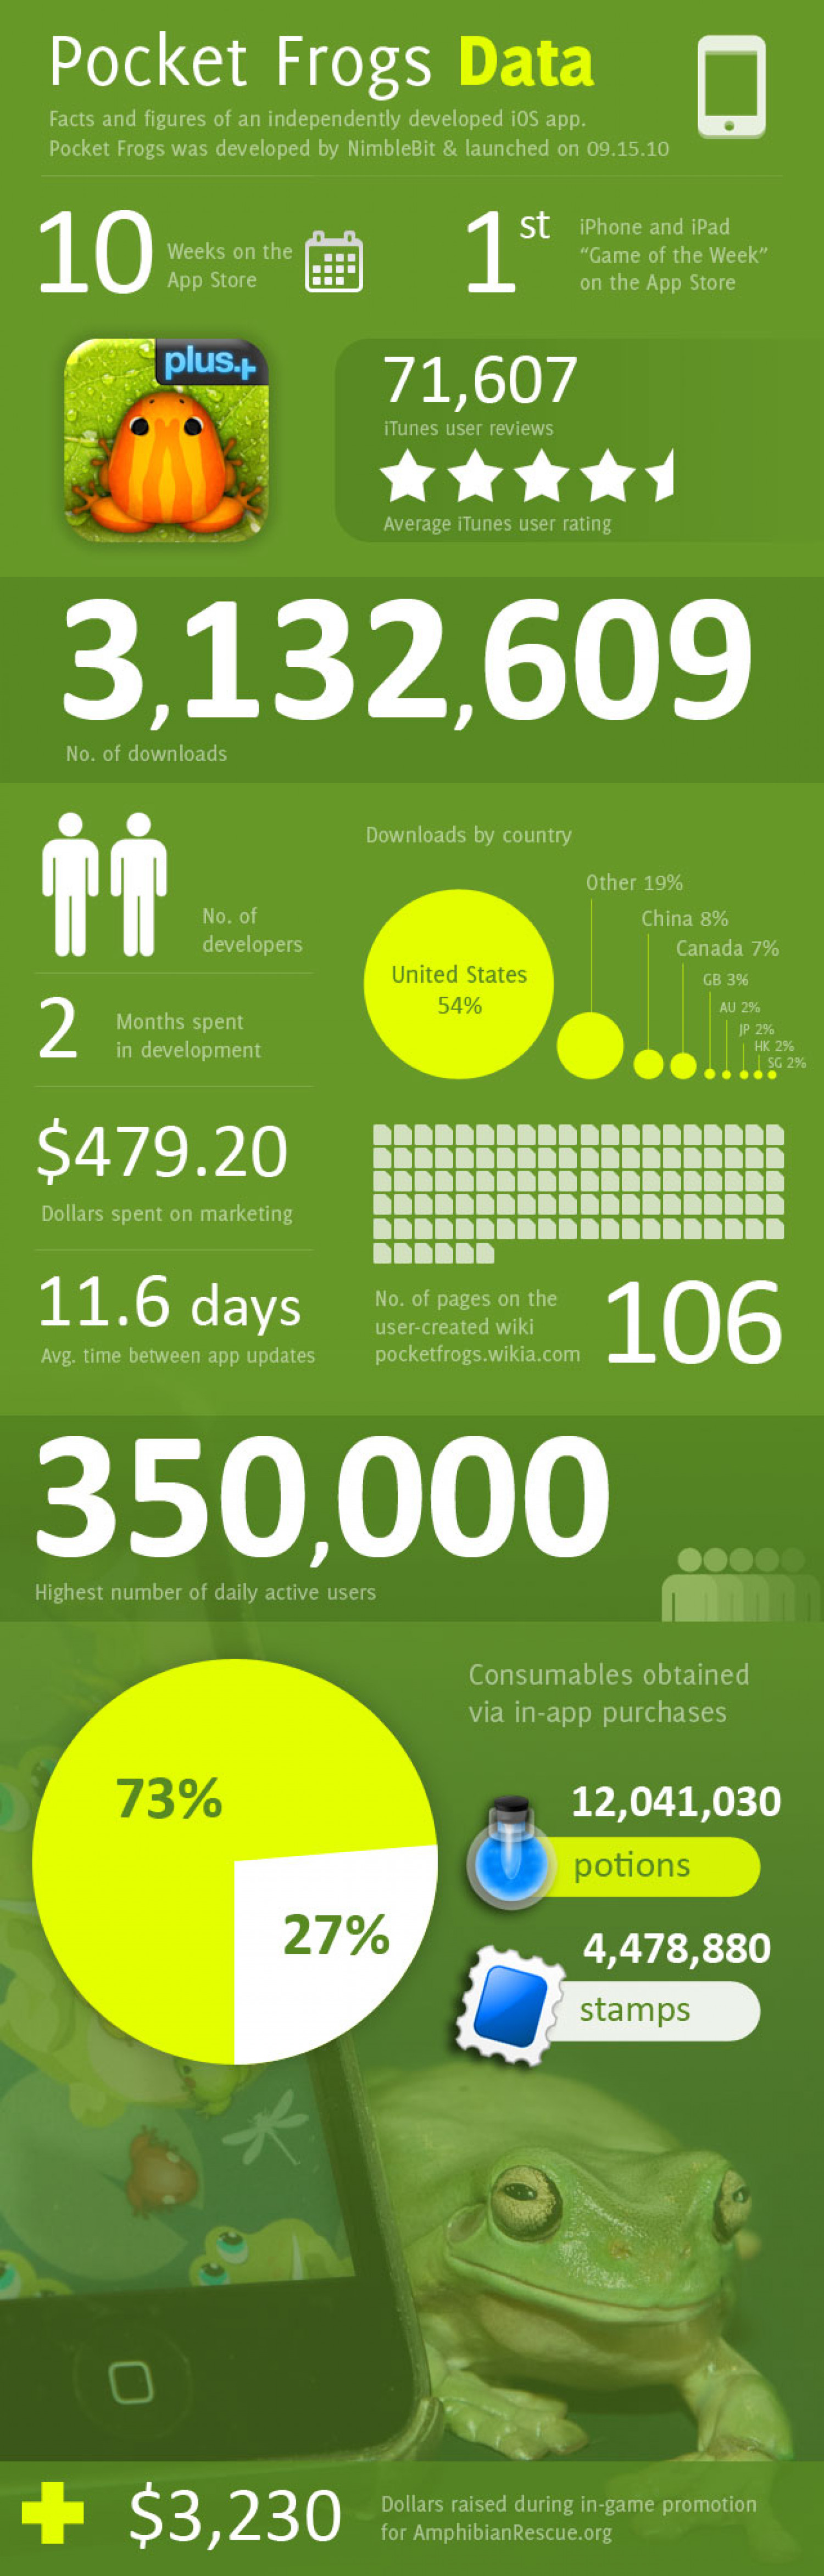 10 weeks on the App Store: Pocket Frogs Infographic